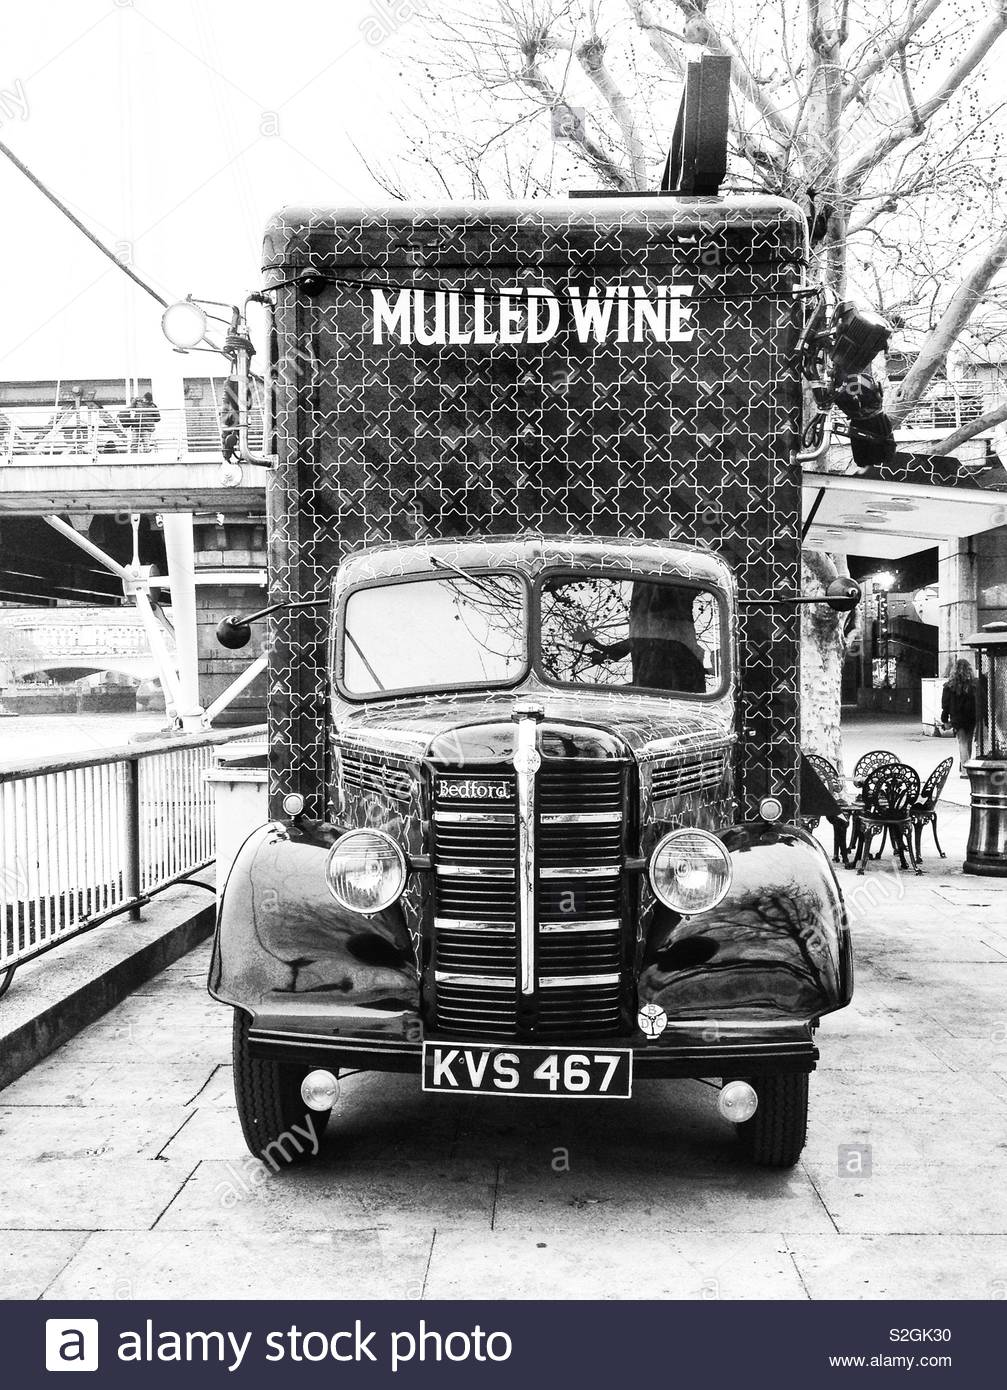 Vintage van on the Southbank of the river Thames near Hungerford bridge, selling mulled wine on a winter day - Stock Image